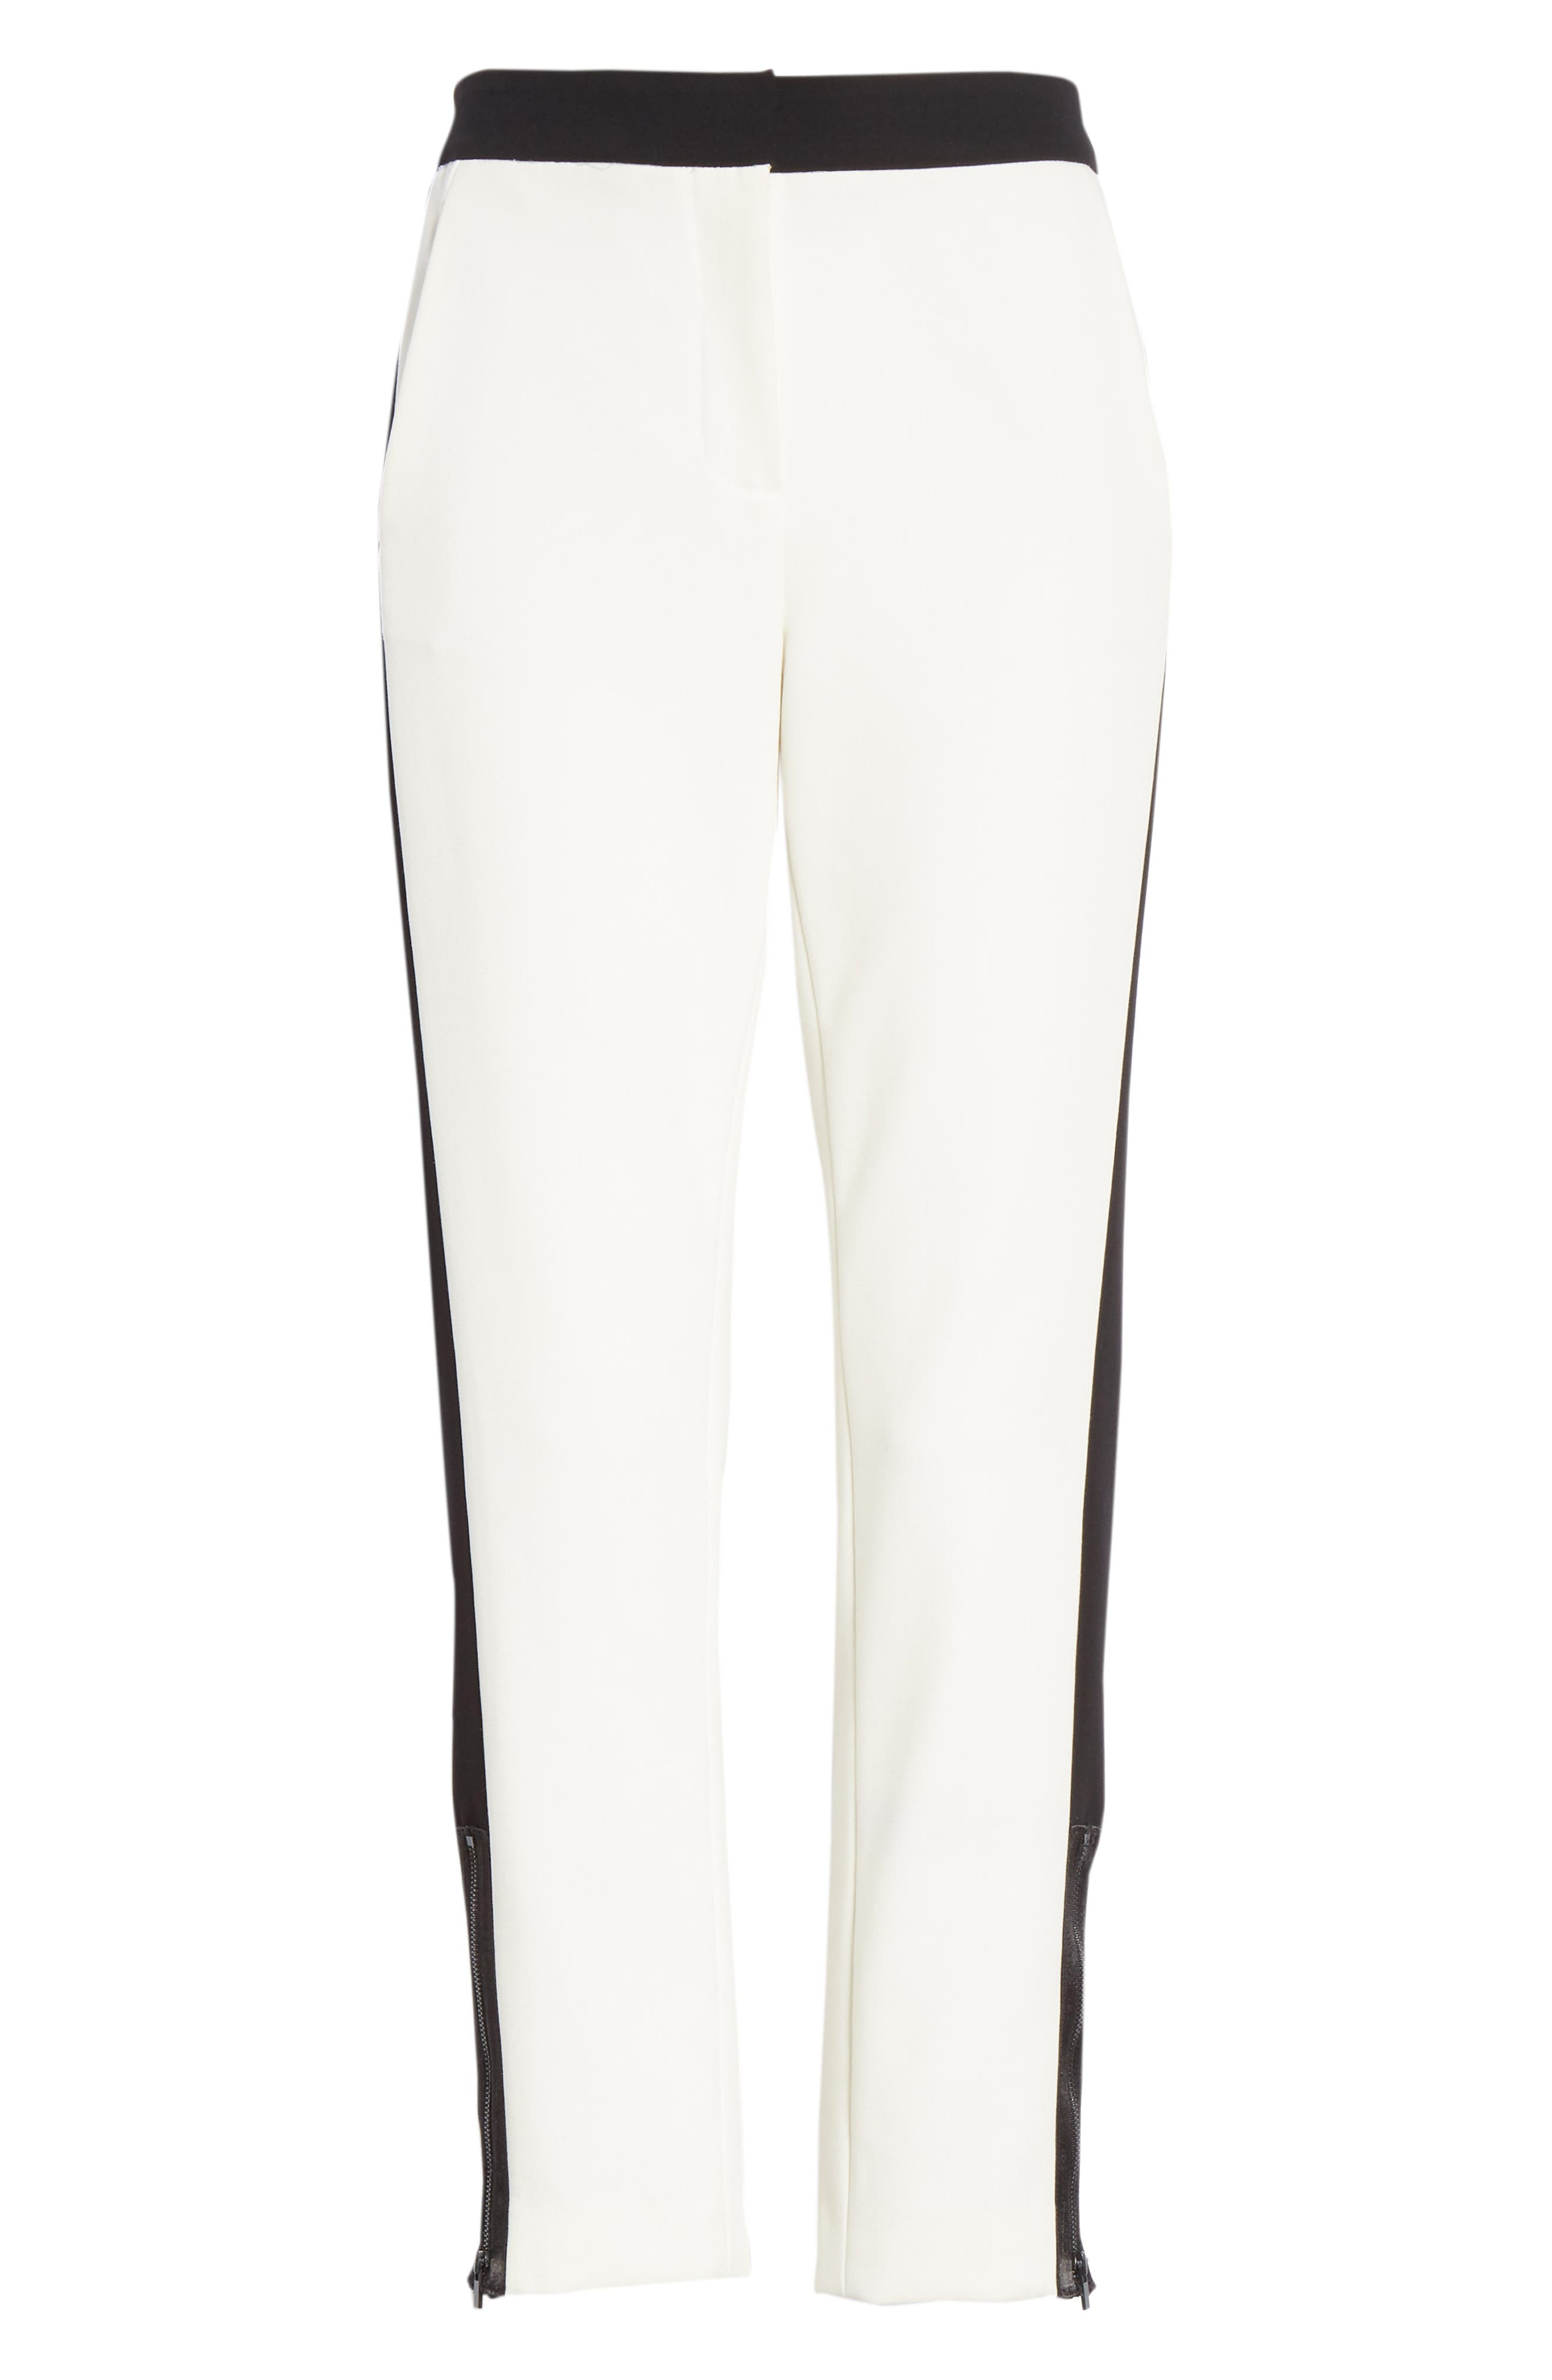 Anson Tuxedo Skinny Pants,                             Alternate thumbnail 6, color,                             IVORY MULTI